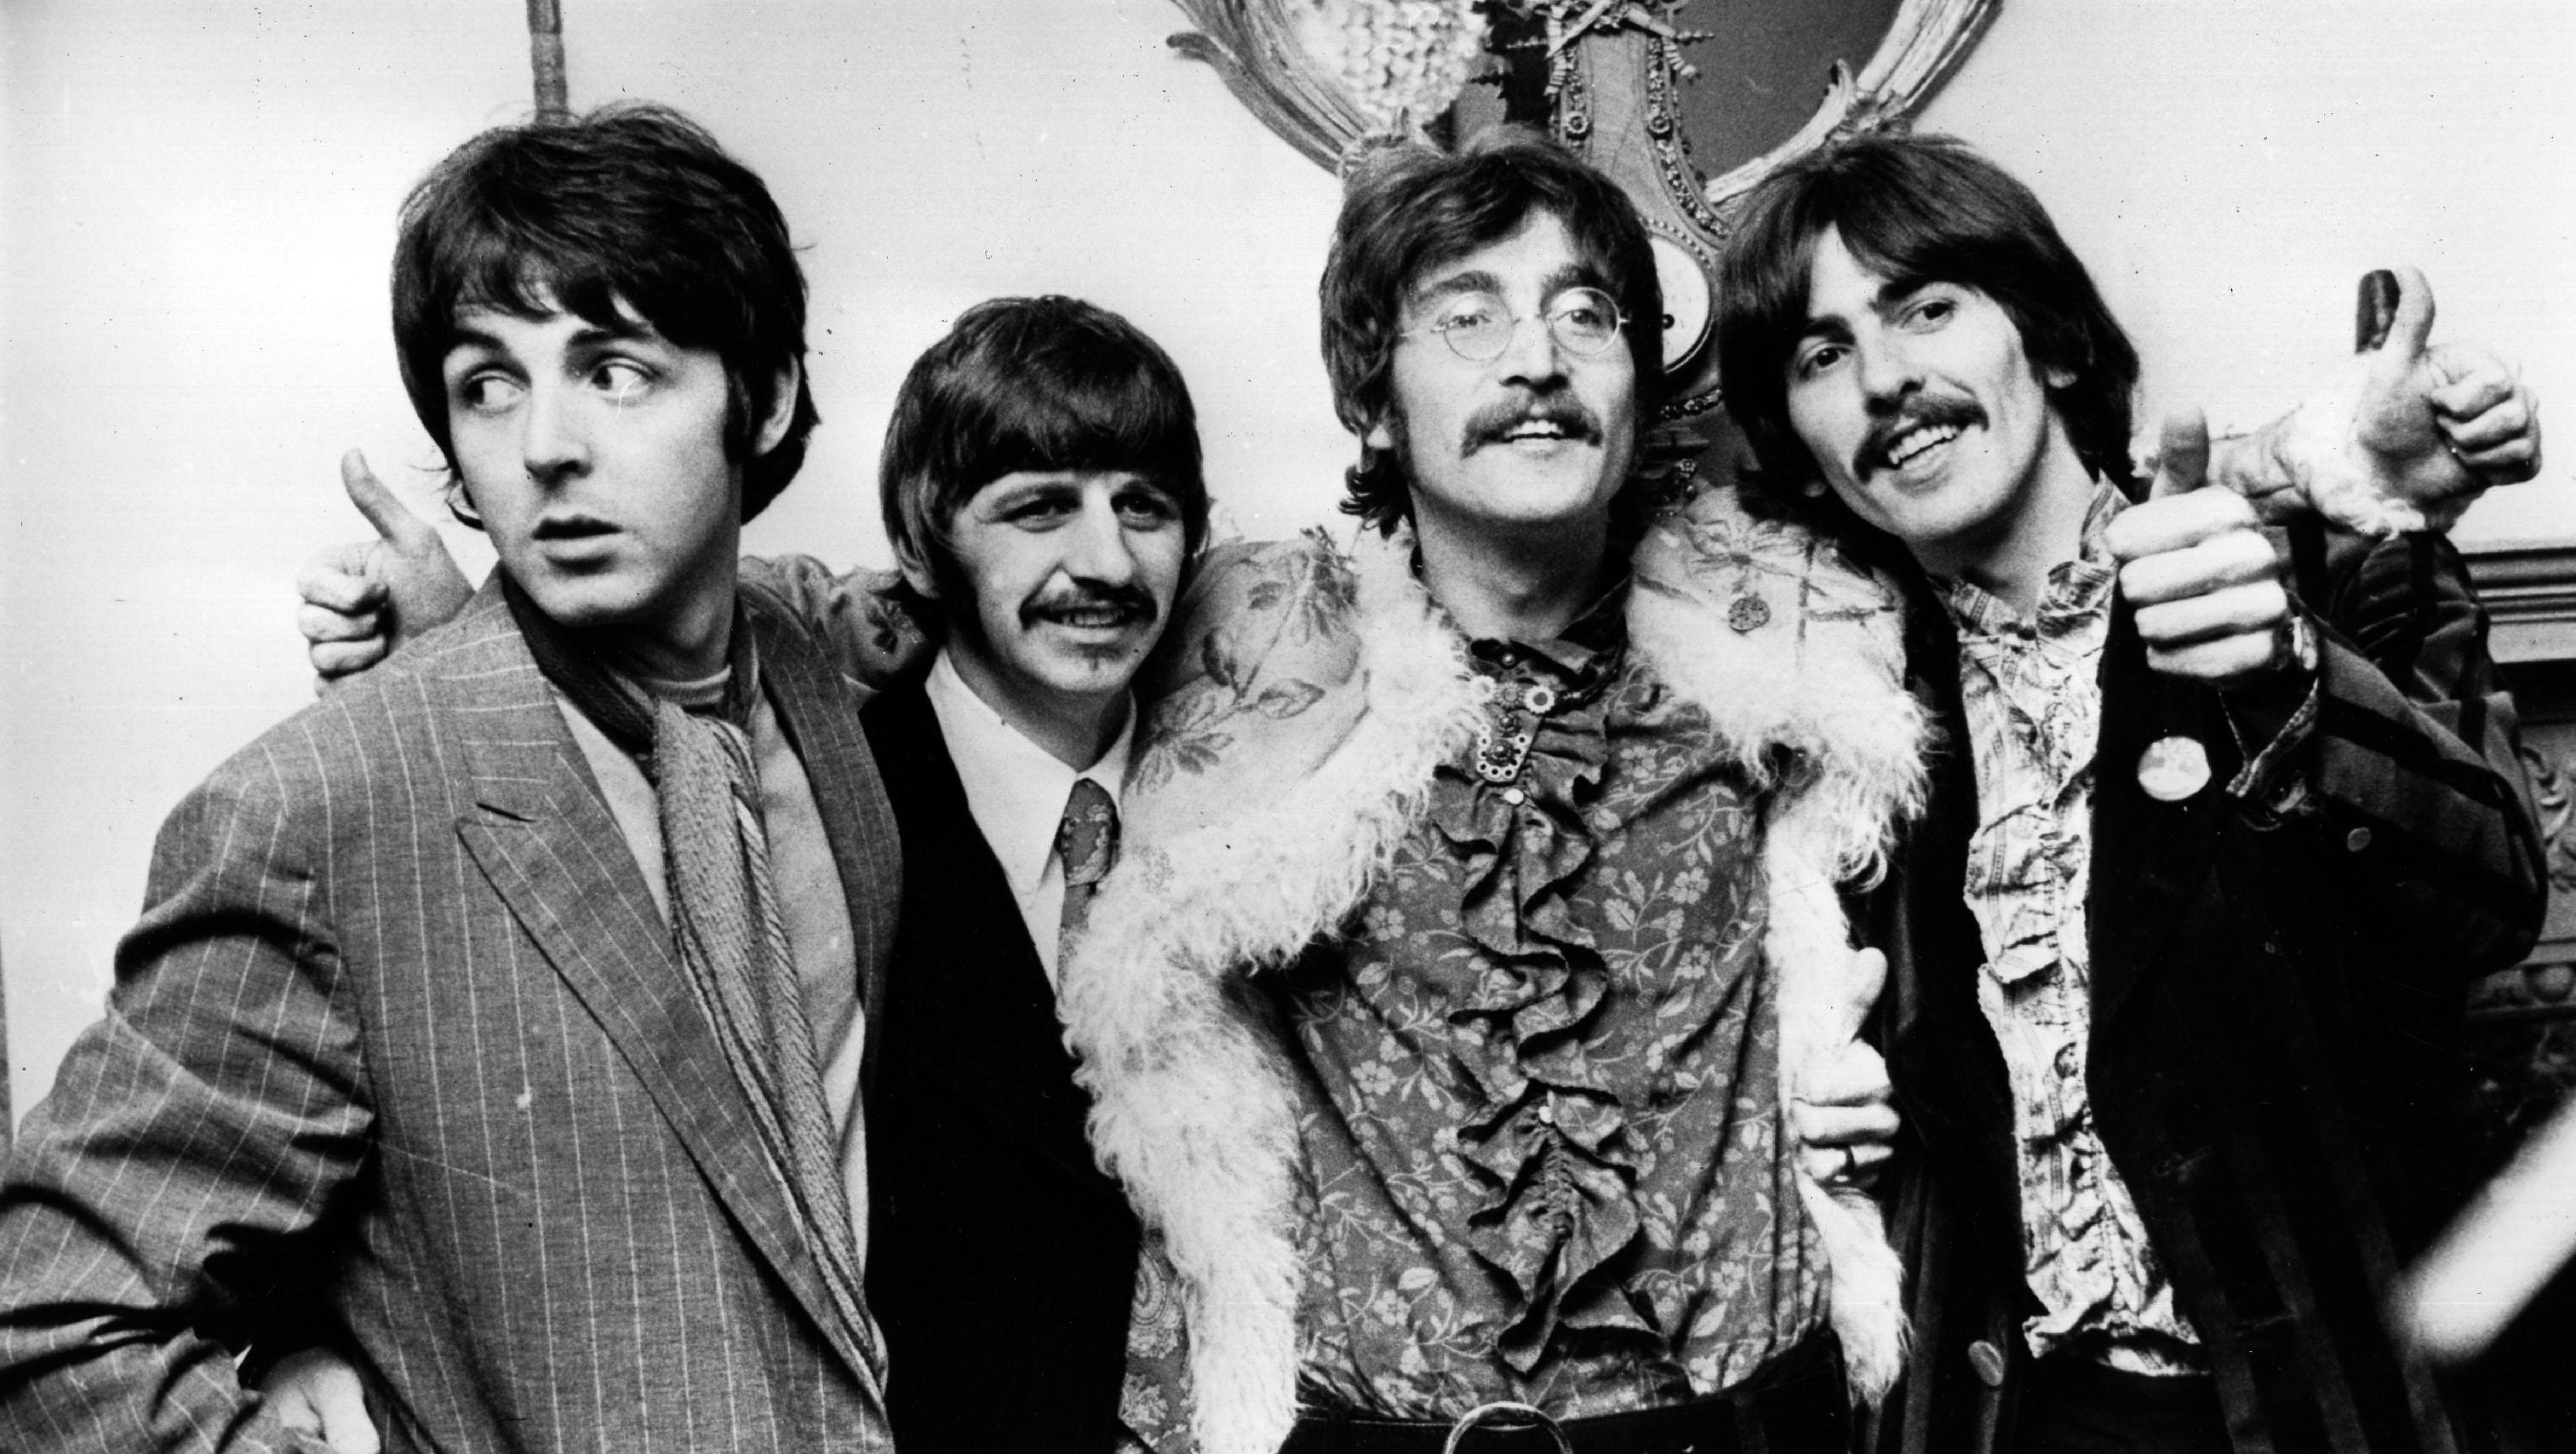 Jim Irsay buys piano John Lennon used to compose 'Sgt. Pepper's Lonely Hearts Club Band' songs